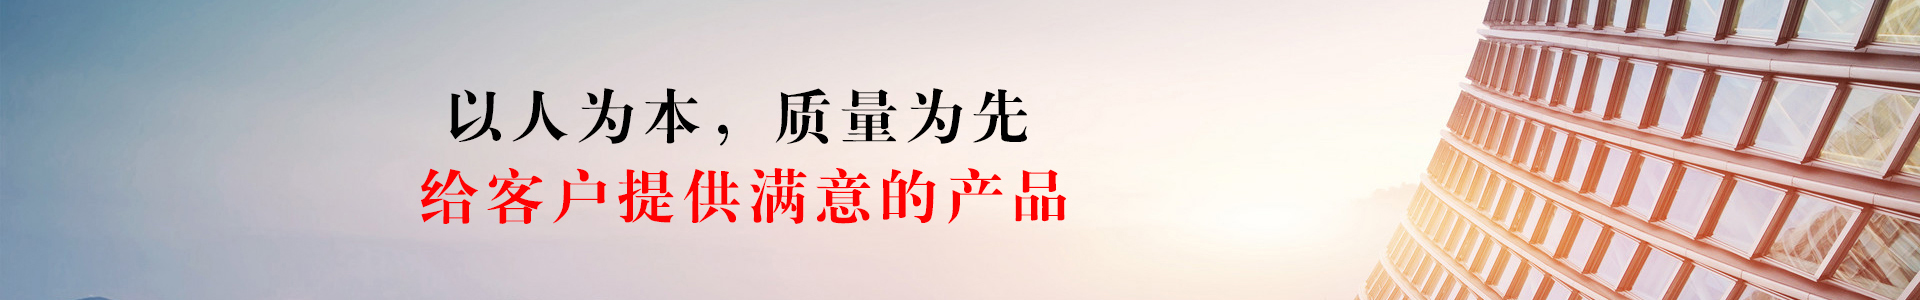 http://www.chinachkj.com/data/images/slide/20190802112758_696.jpg